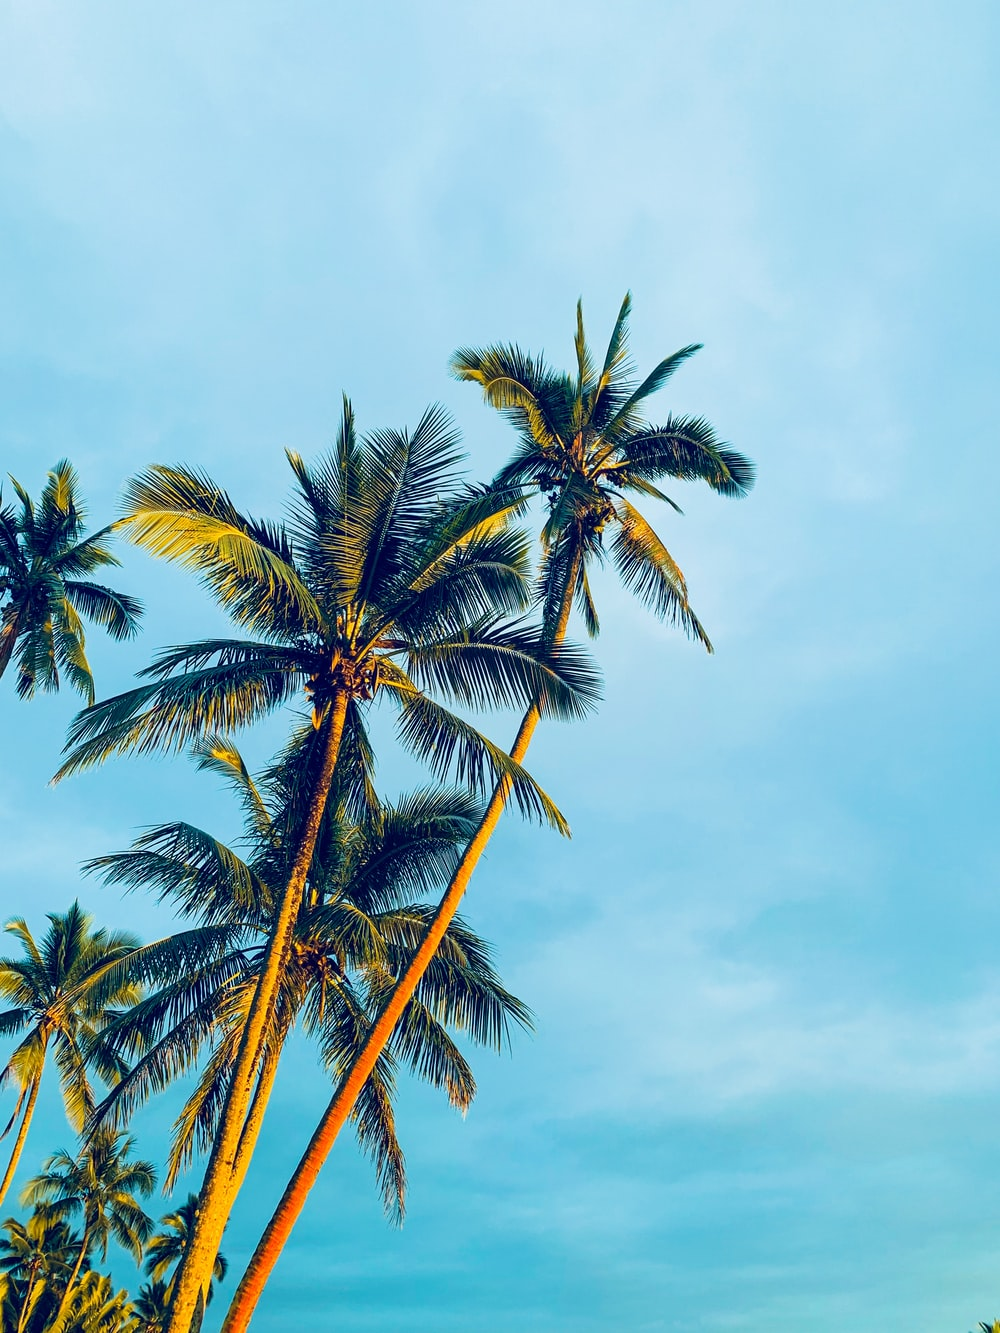 coconut trees under blue sky during daytime